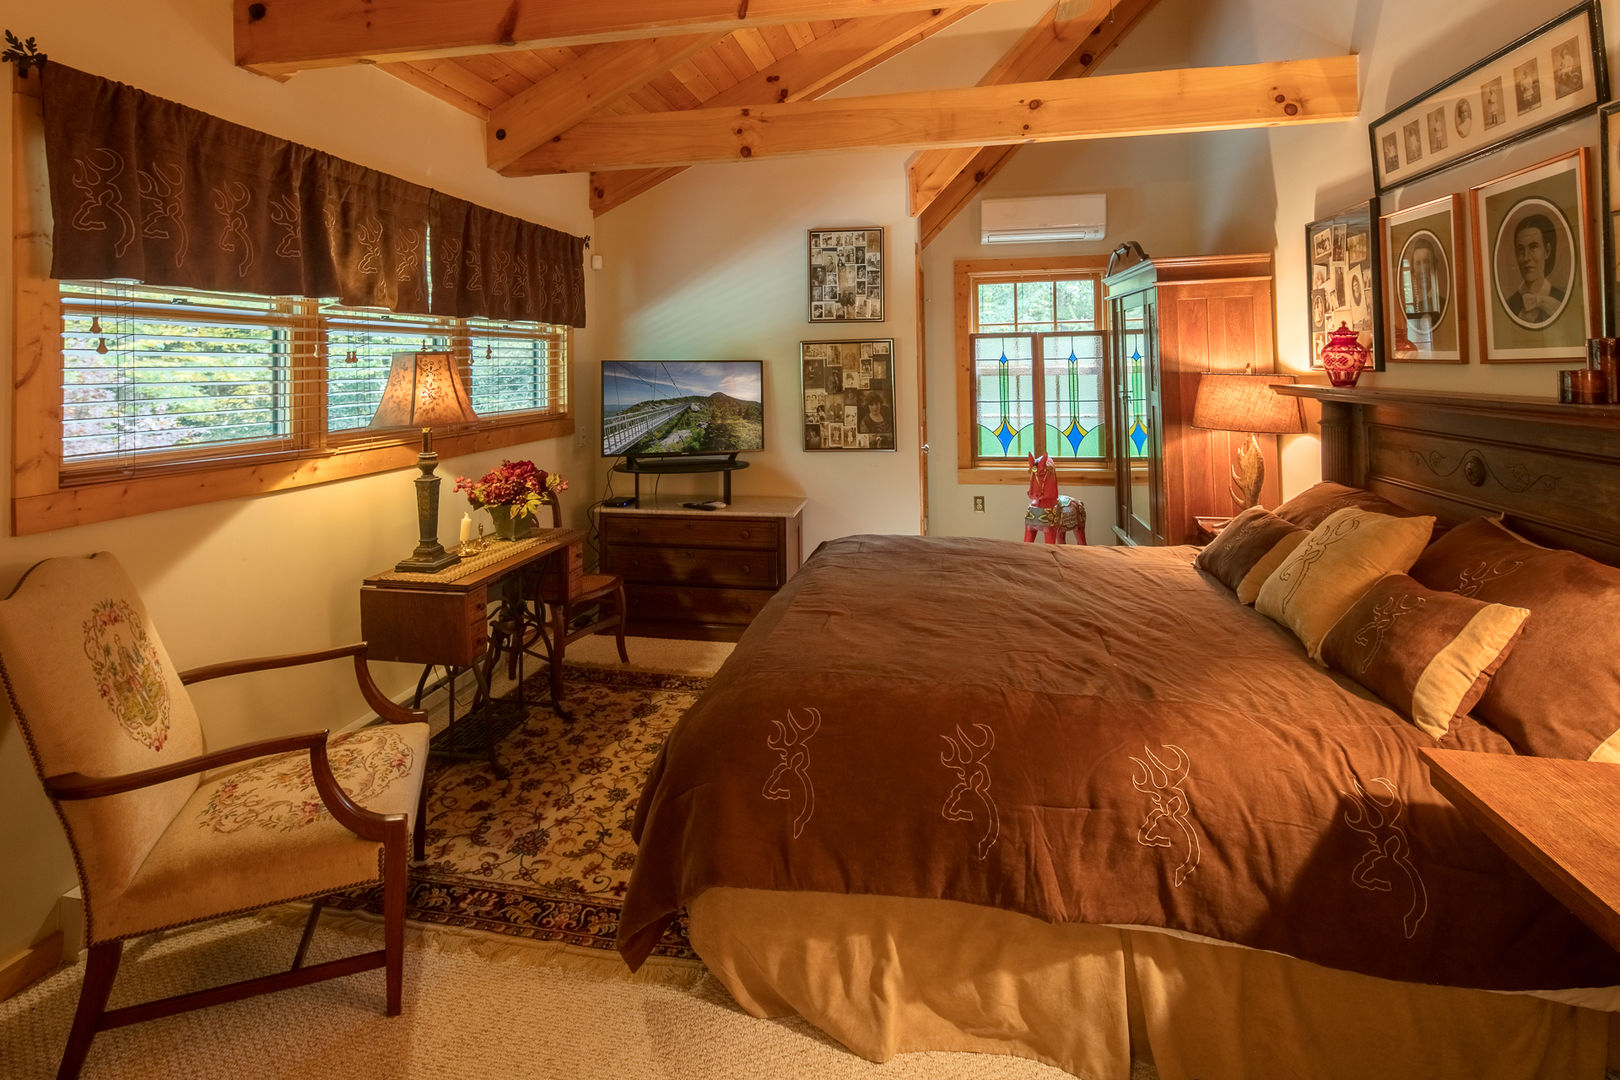 Another fabulous bedroom at Almost Perfect in Blowing Rock, NC.